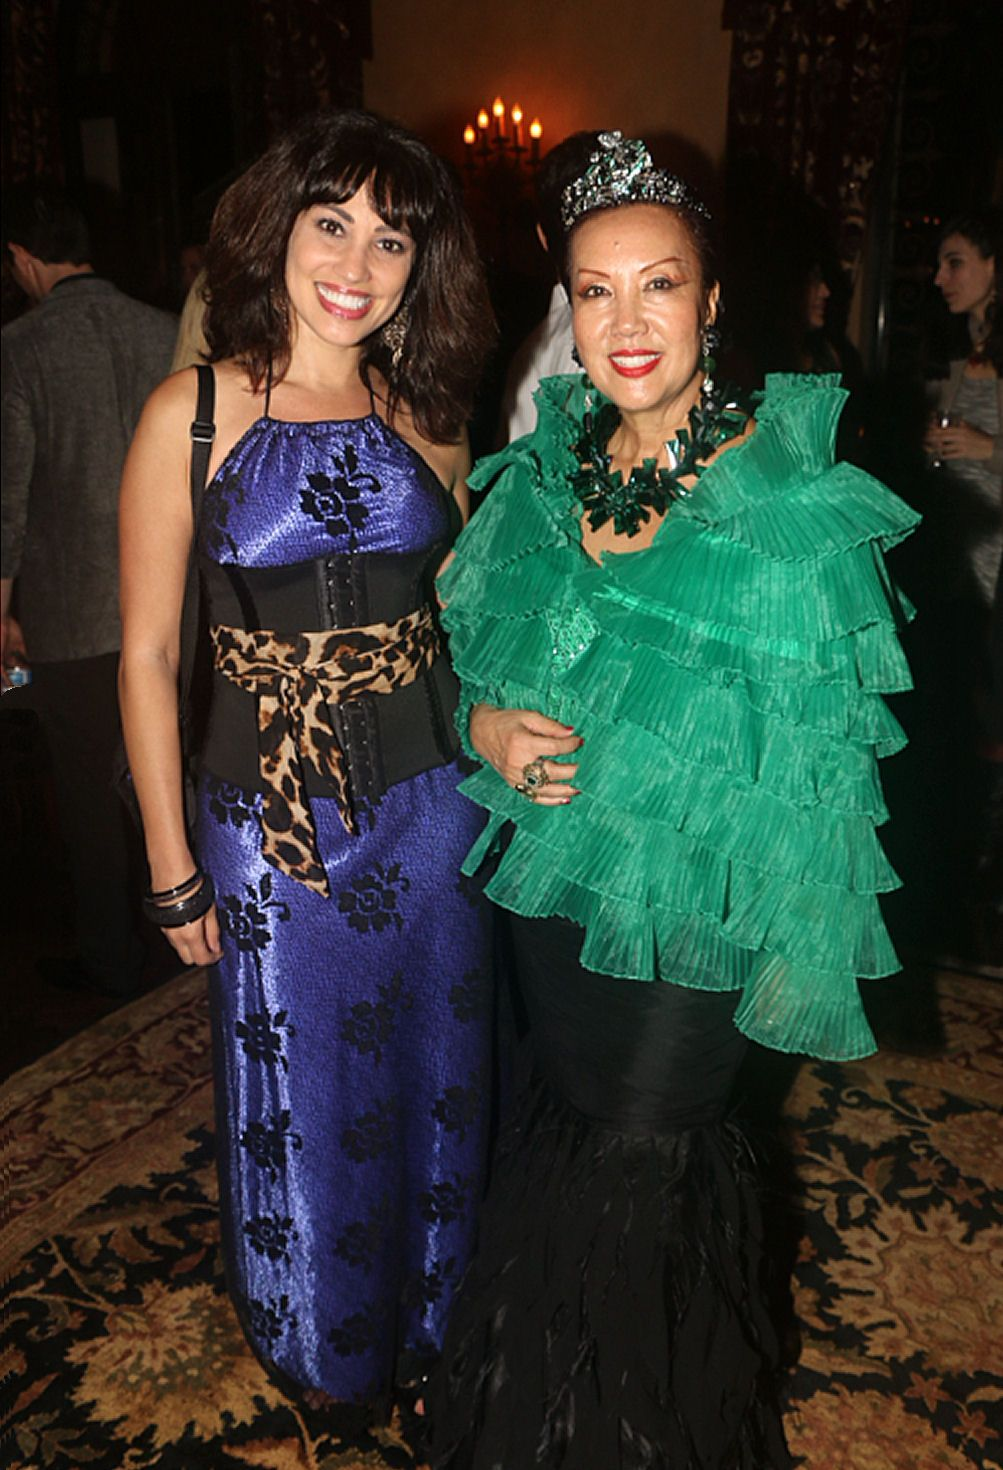 #Actress #LisaCatara with fashion Icon #SueWong after Sue's 2014 runway show in #LosAngeles. Lisa is wearing one of her own creations for L.Tarantino Designs (#Actresses #fashion #design #runway #collections #TV #film #television #filmmaking #cleveland #IMDB #Hollywood #movies #drama #Celebrities).